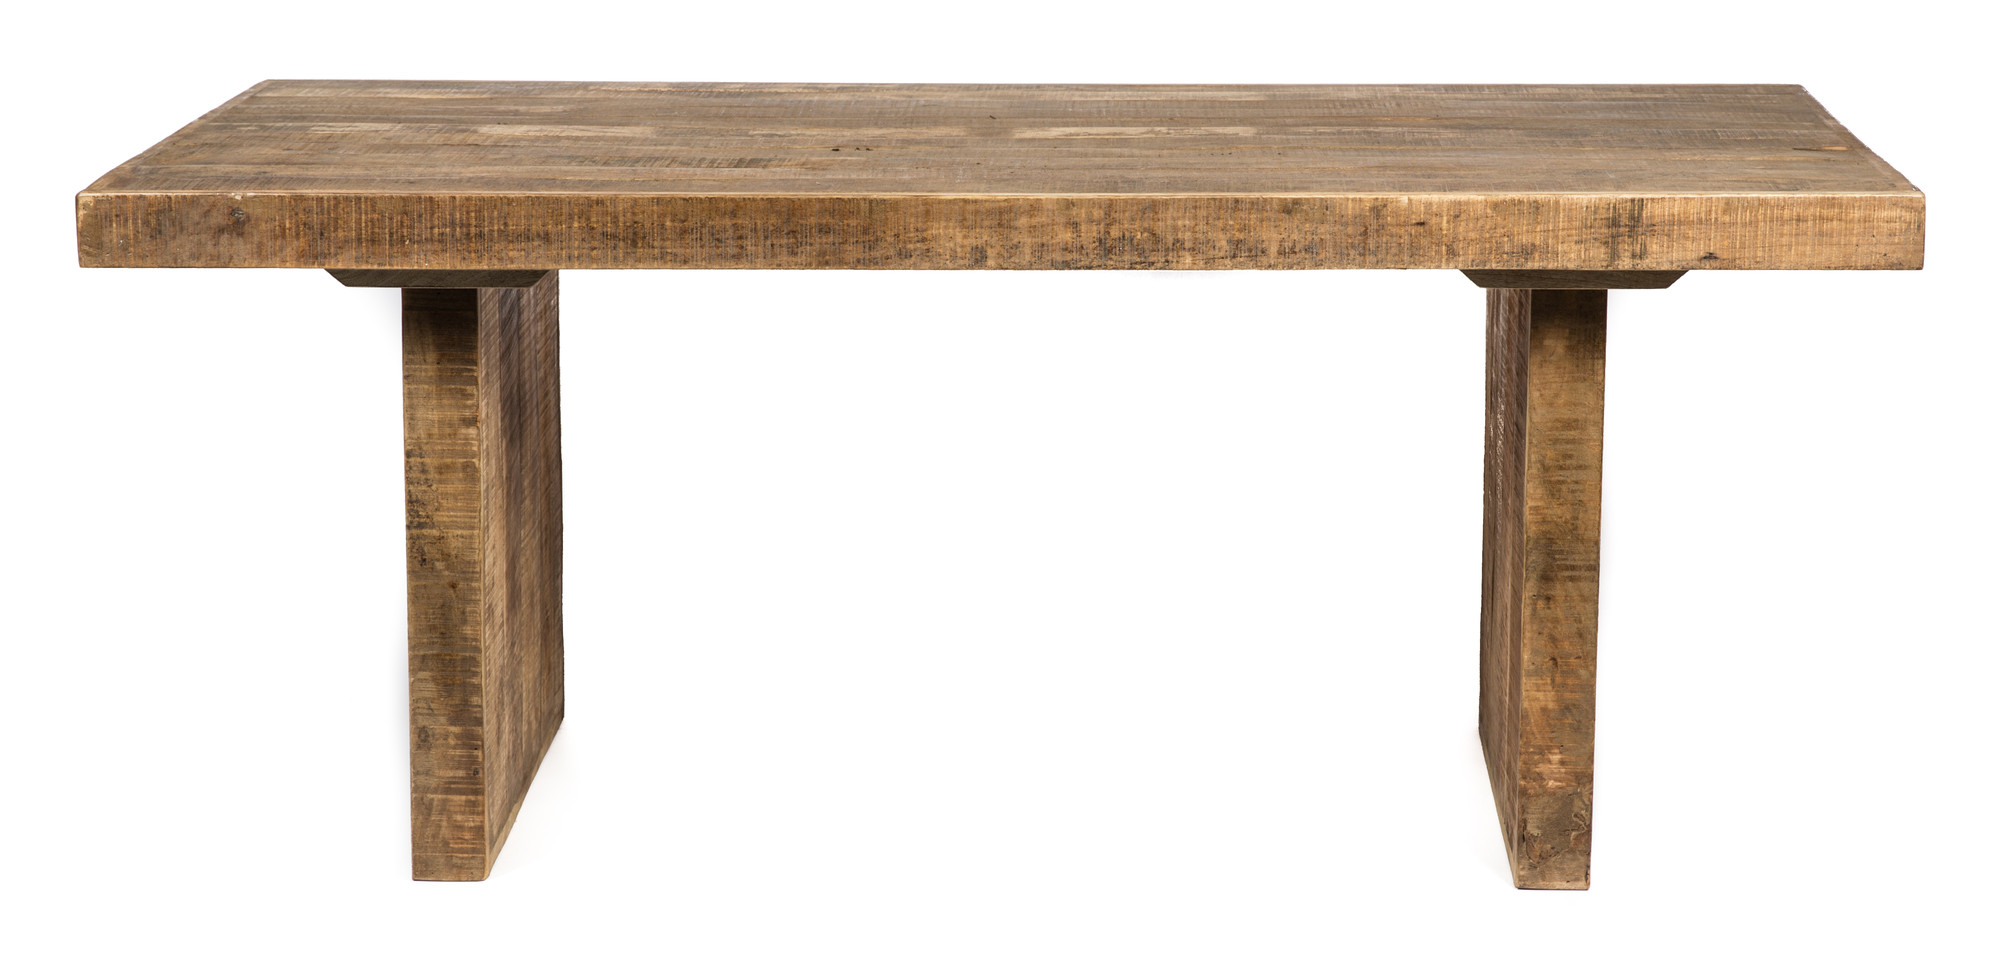 Sku cas1128 swazi 6 seater rectangular mango wood dining table is also sometimes listed under the following manufacturer numbers bx63